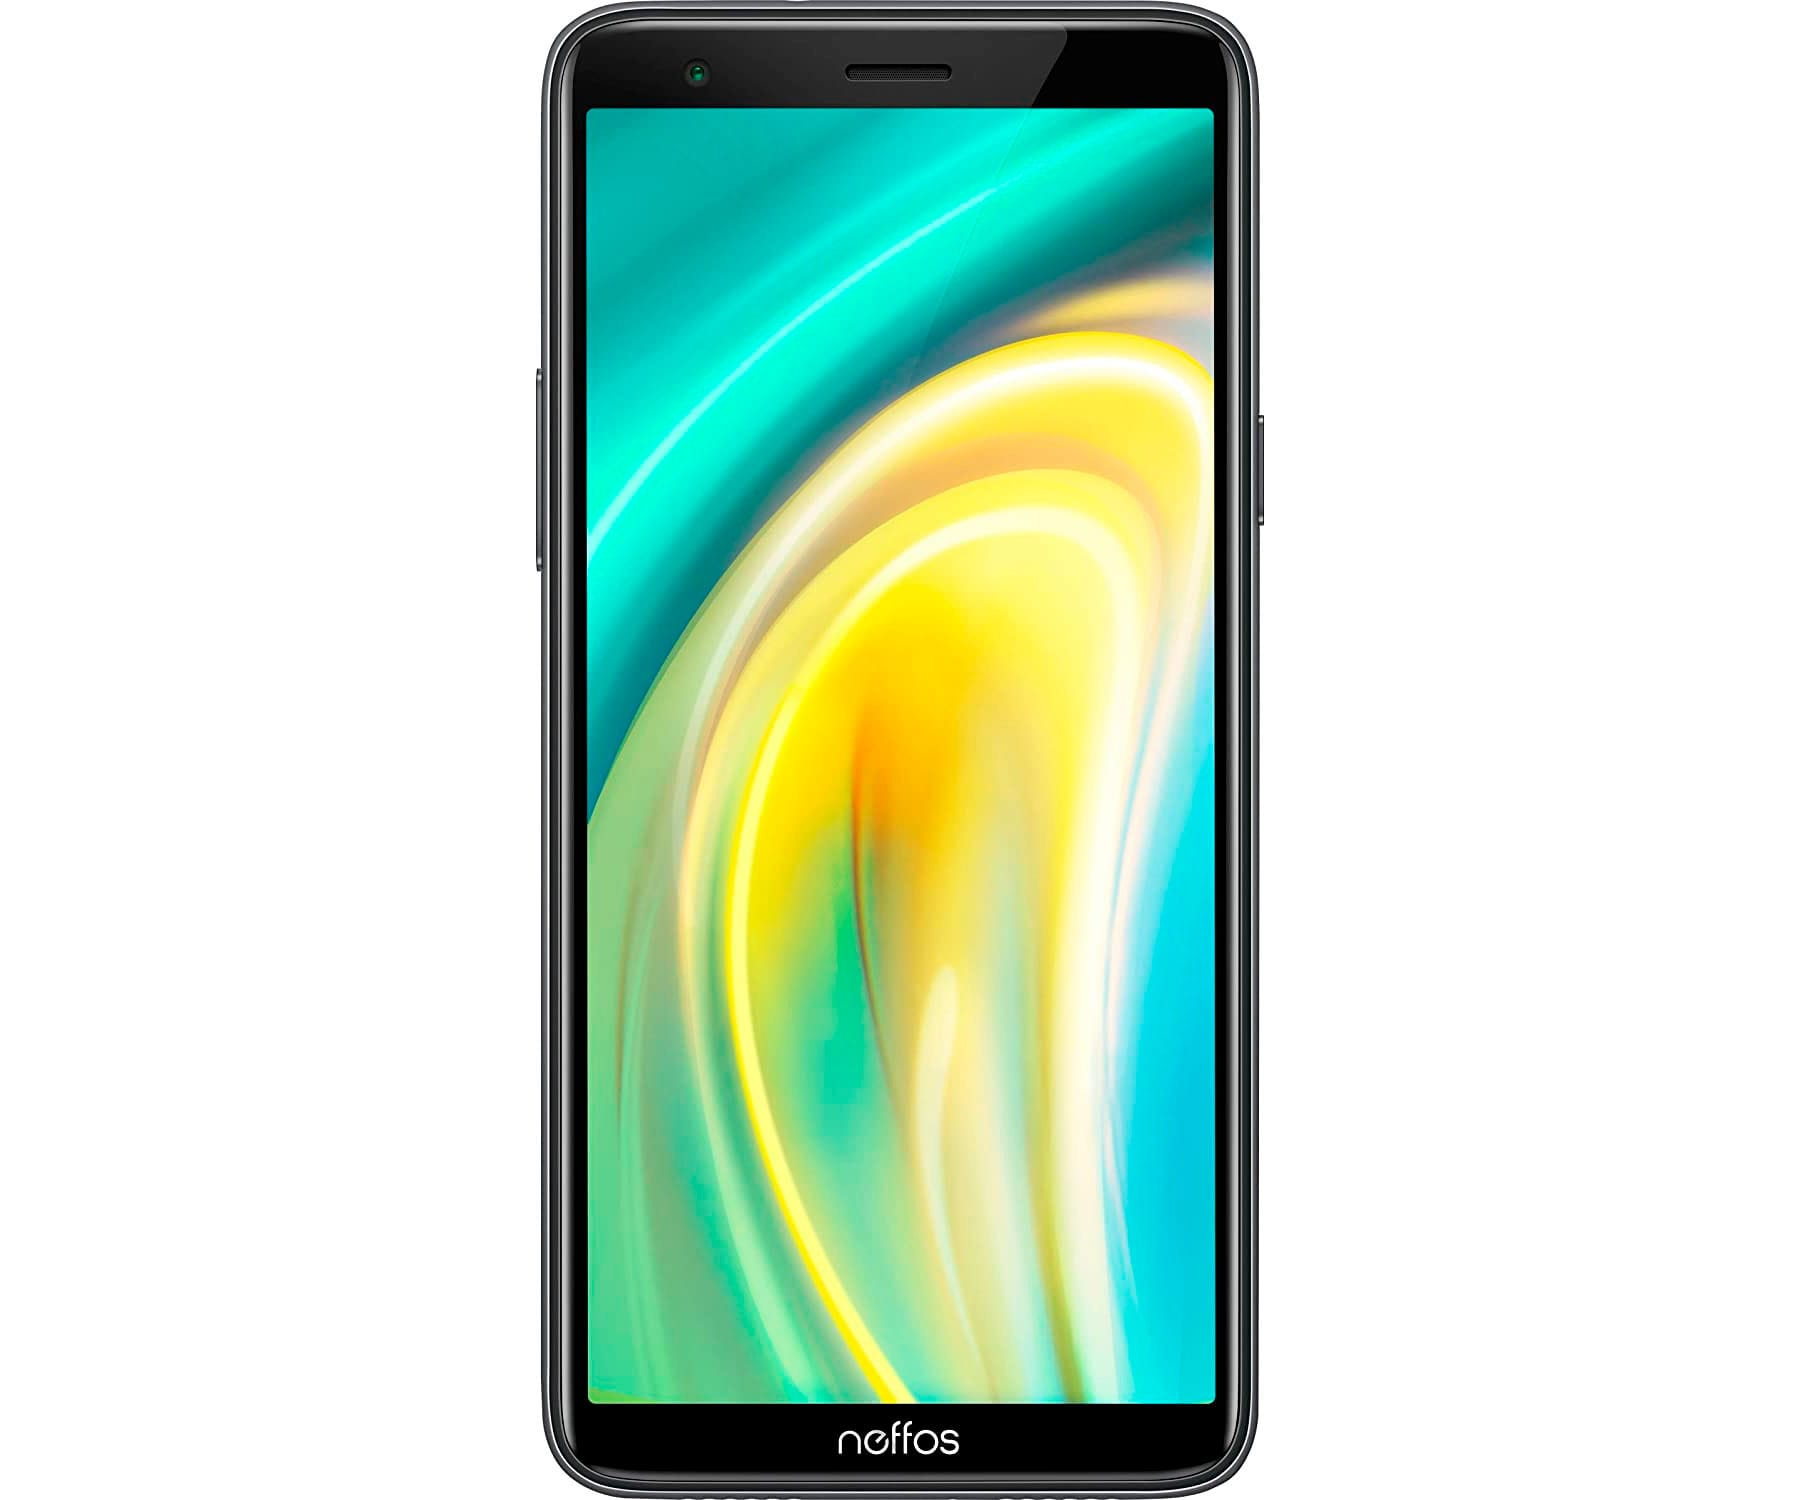 TP-LINK NEFFOS A5 GRIS MÓVIL 3G DUAL SIM 5.99 IPS HD+/4CORE/16GB/1GB RAM/5MP/2MP